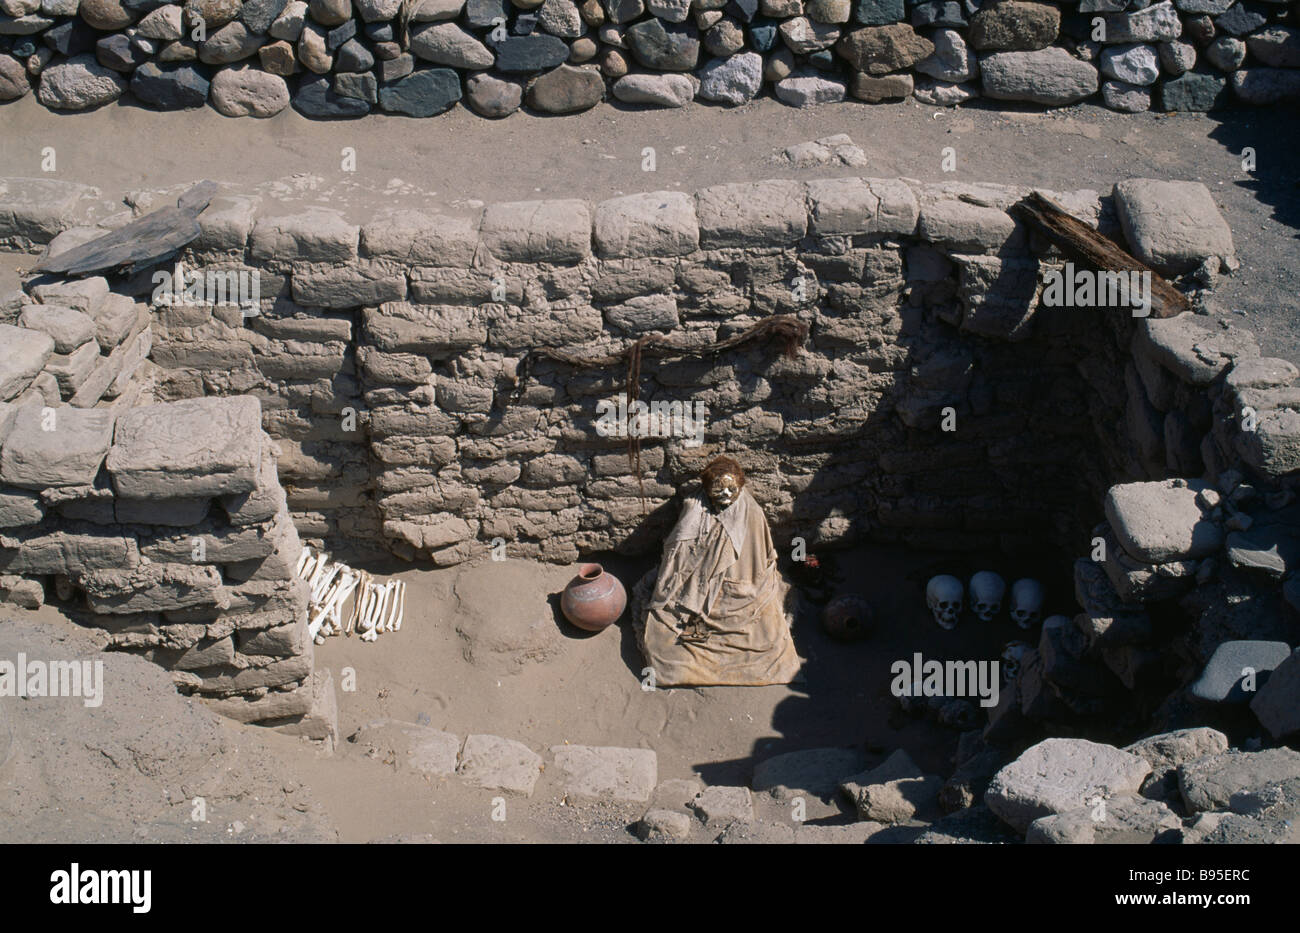 PERU Ica Administrative Division Nazca Nazca cemetery and mummified remains. - Stock Image